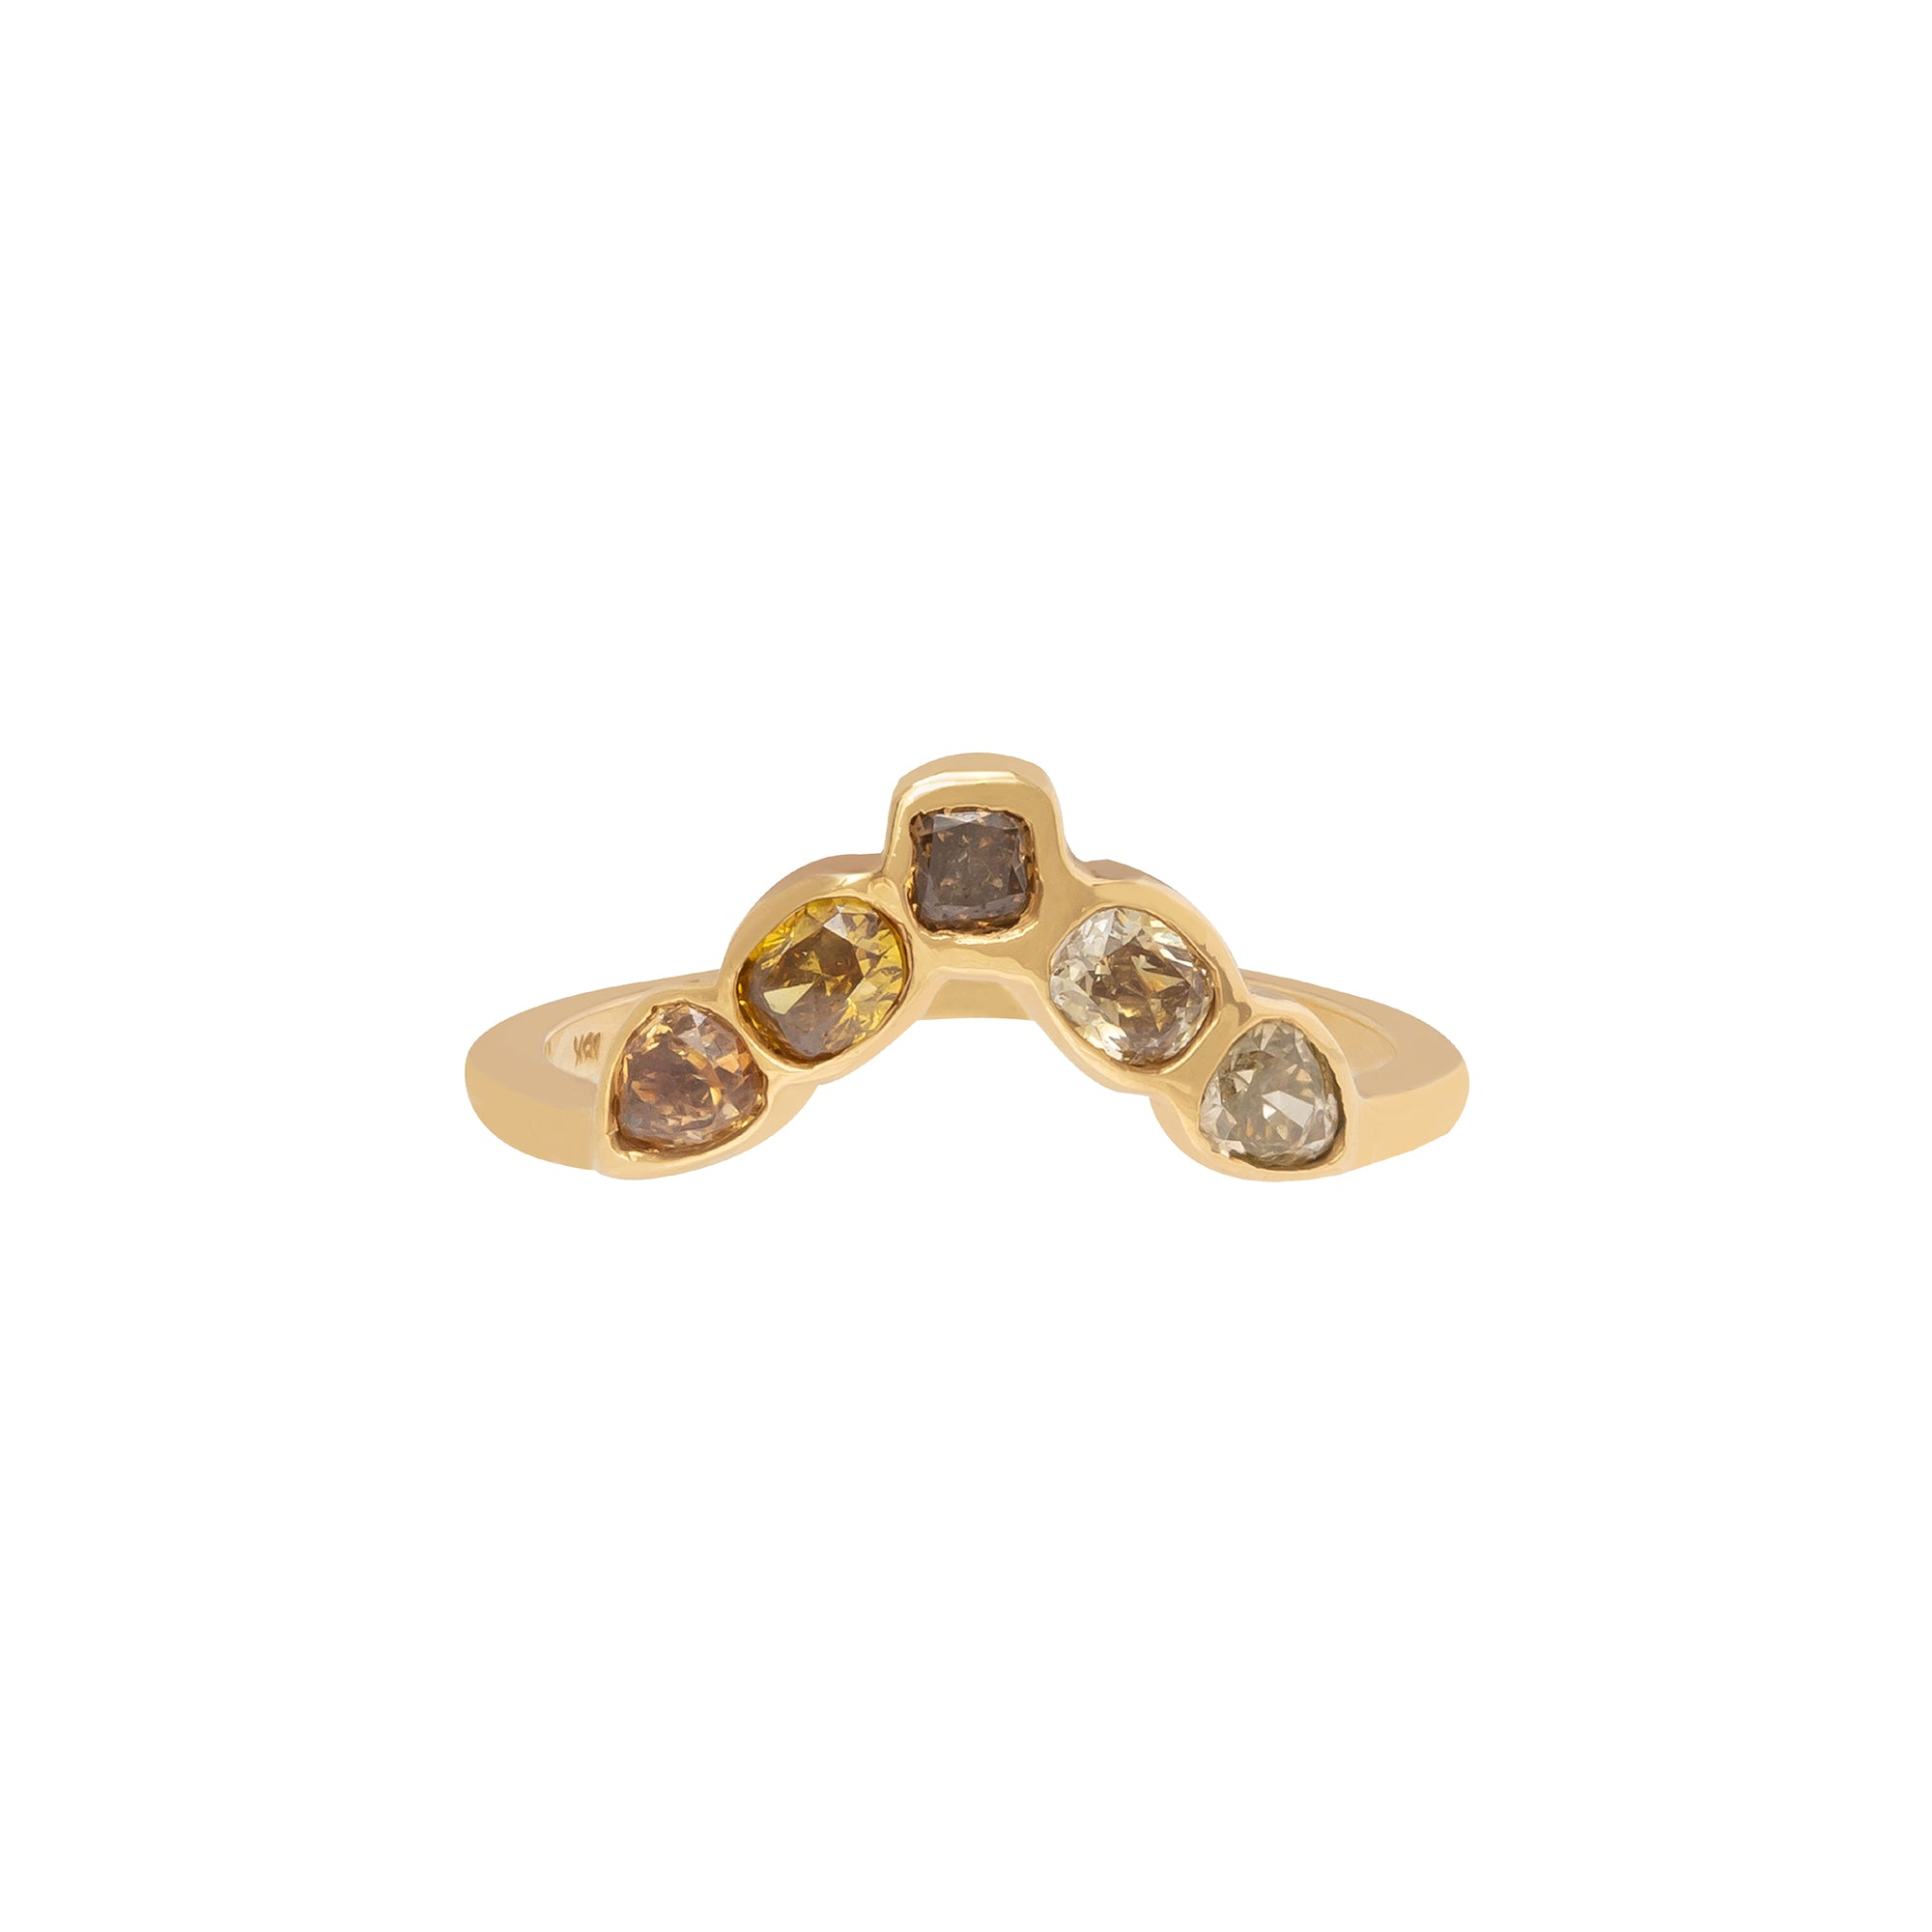 Surface Triangle Ring - Xiao Wang - Rings | Broken English Jewelry